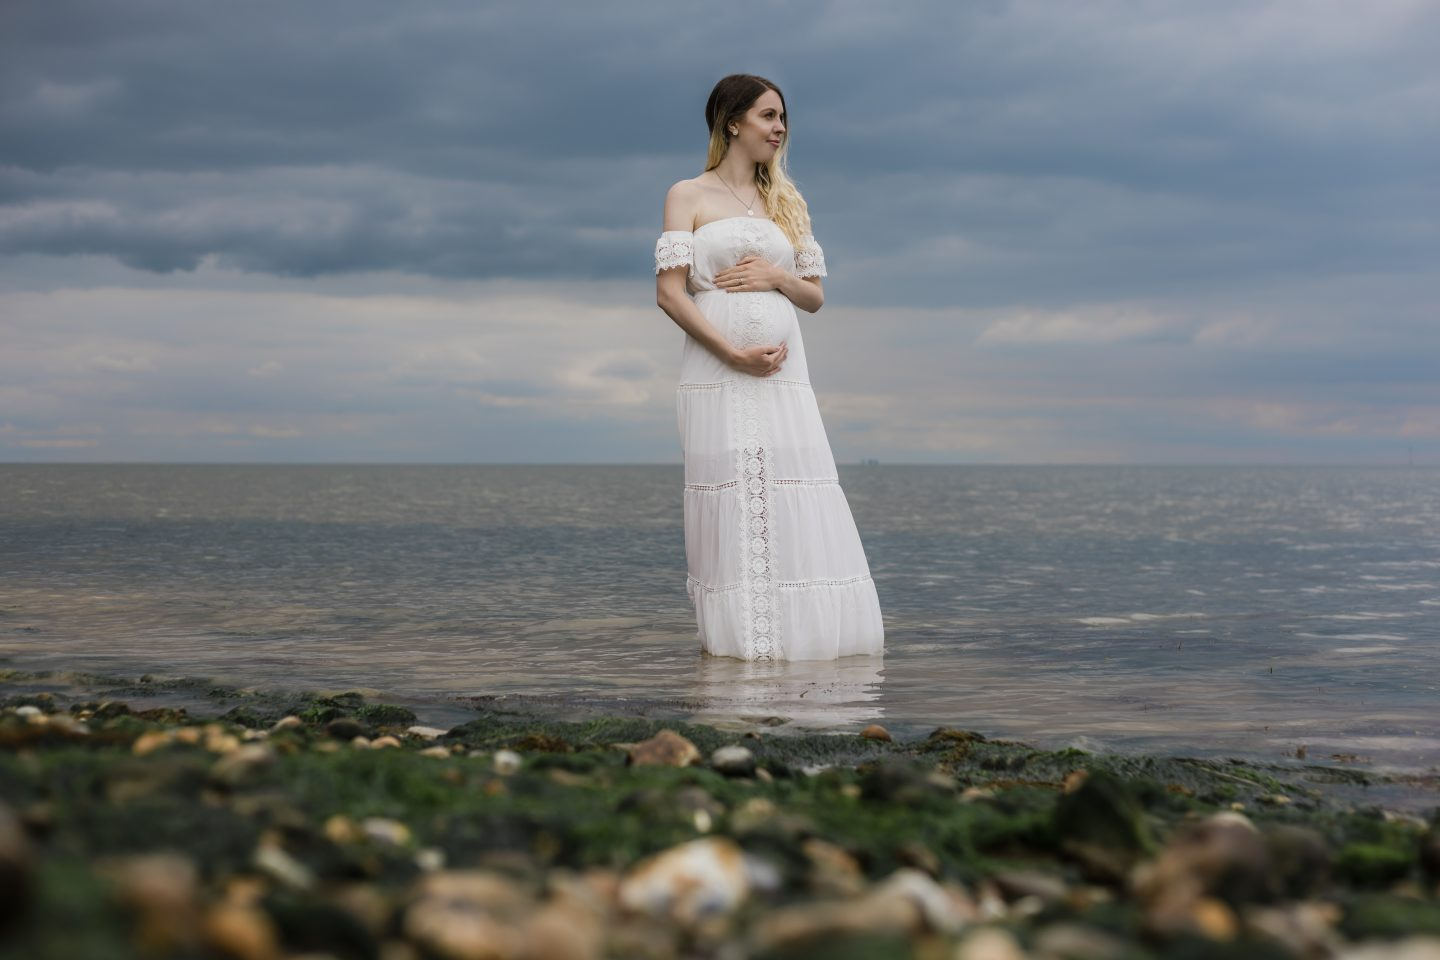 Boho sea pregnancy announcement photoshoot, rainbow baby after miscarriage by Robert Marriott